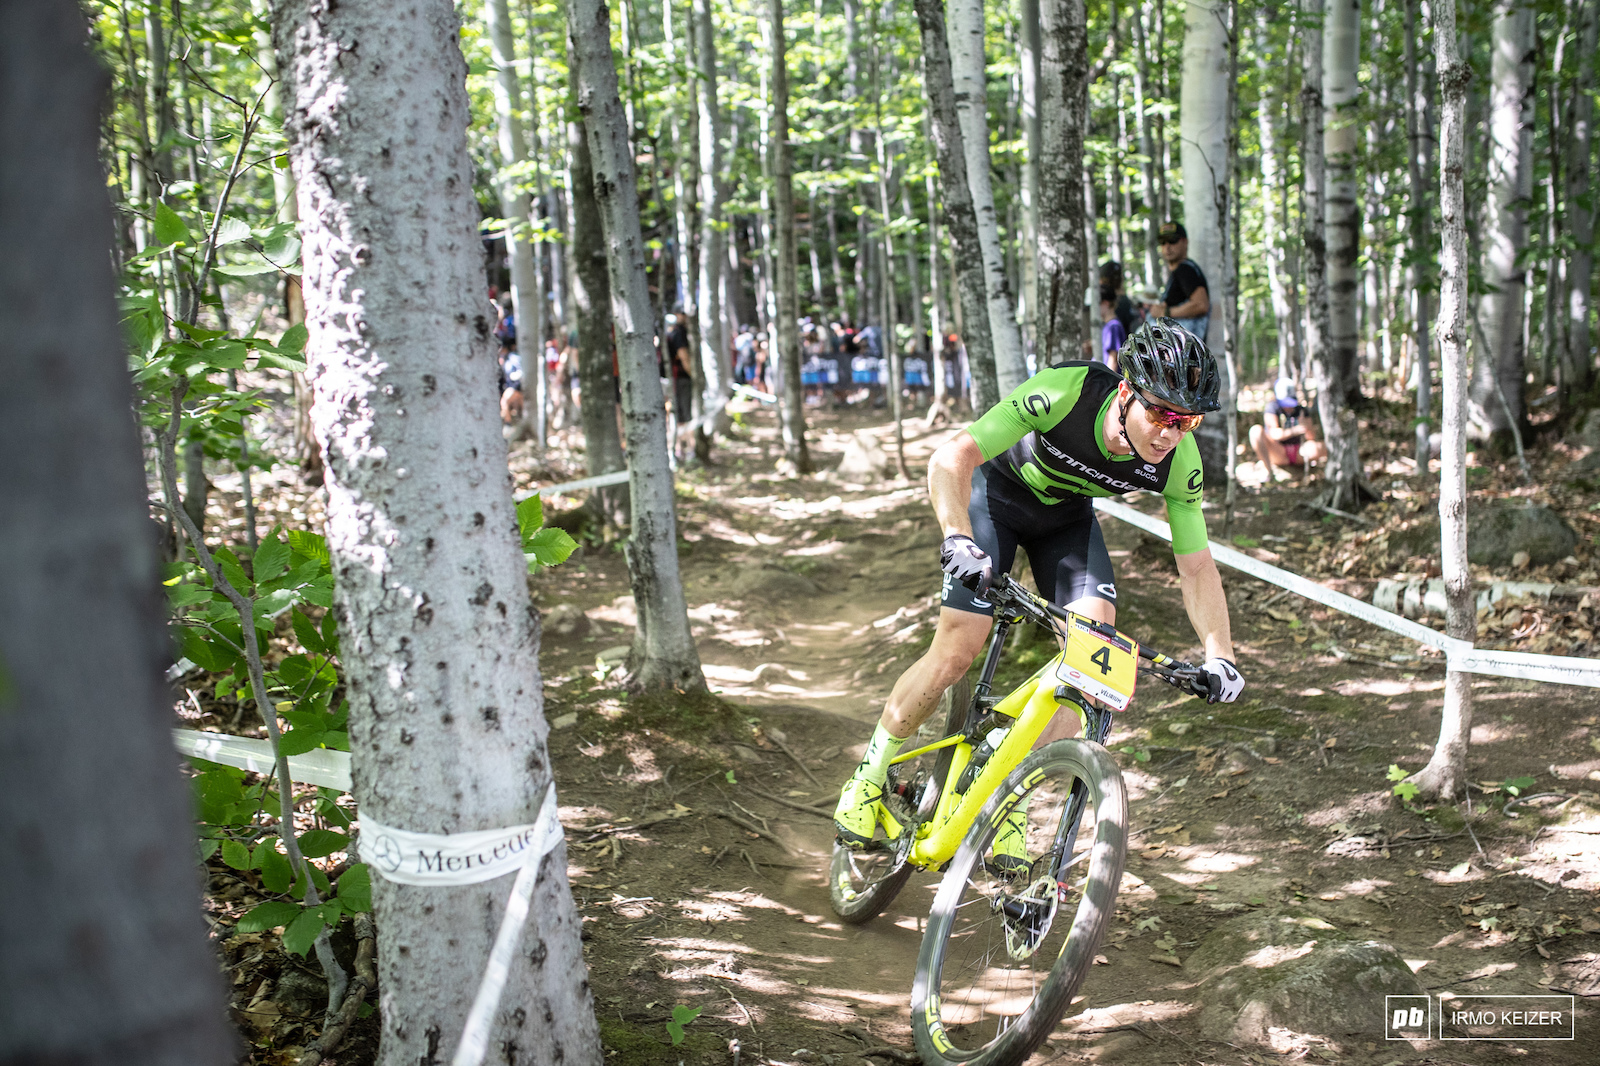 Maxime Marotte has been on a mission this year. Marotte challenged the podium but had to settle for 4th.